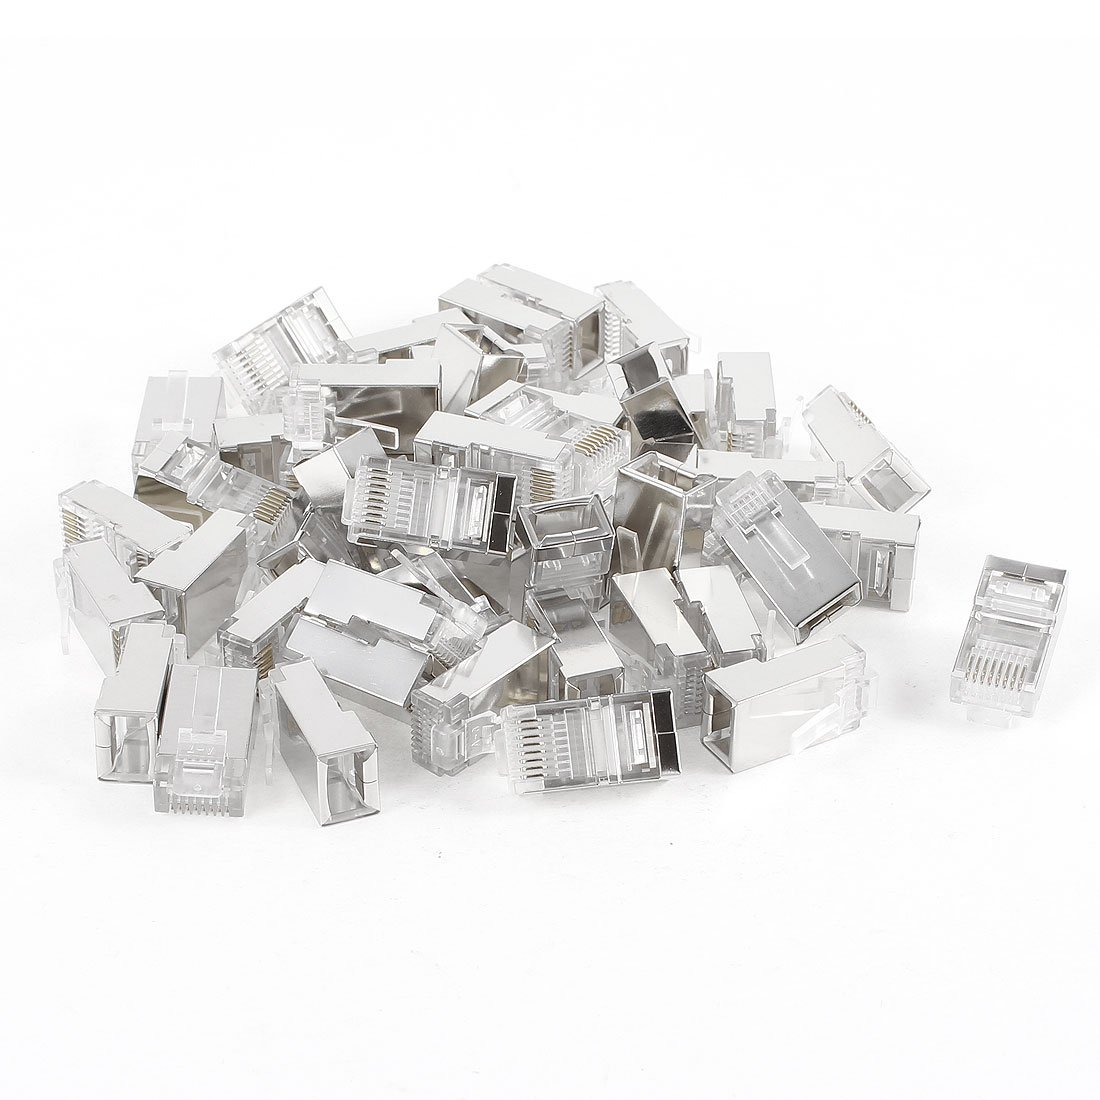 Durable 50 Pcs Silver Tone Shielded RJ45 8P8C Network Cable CAT5 End Plug